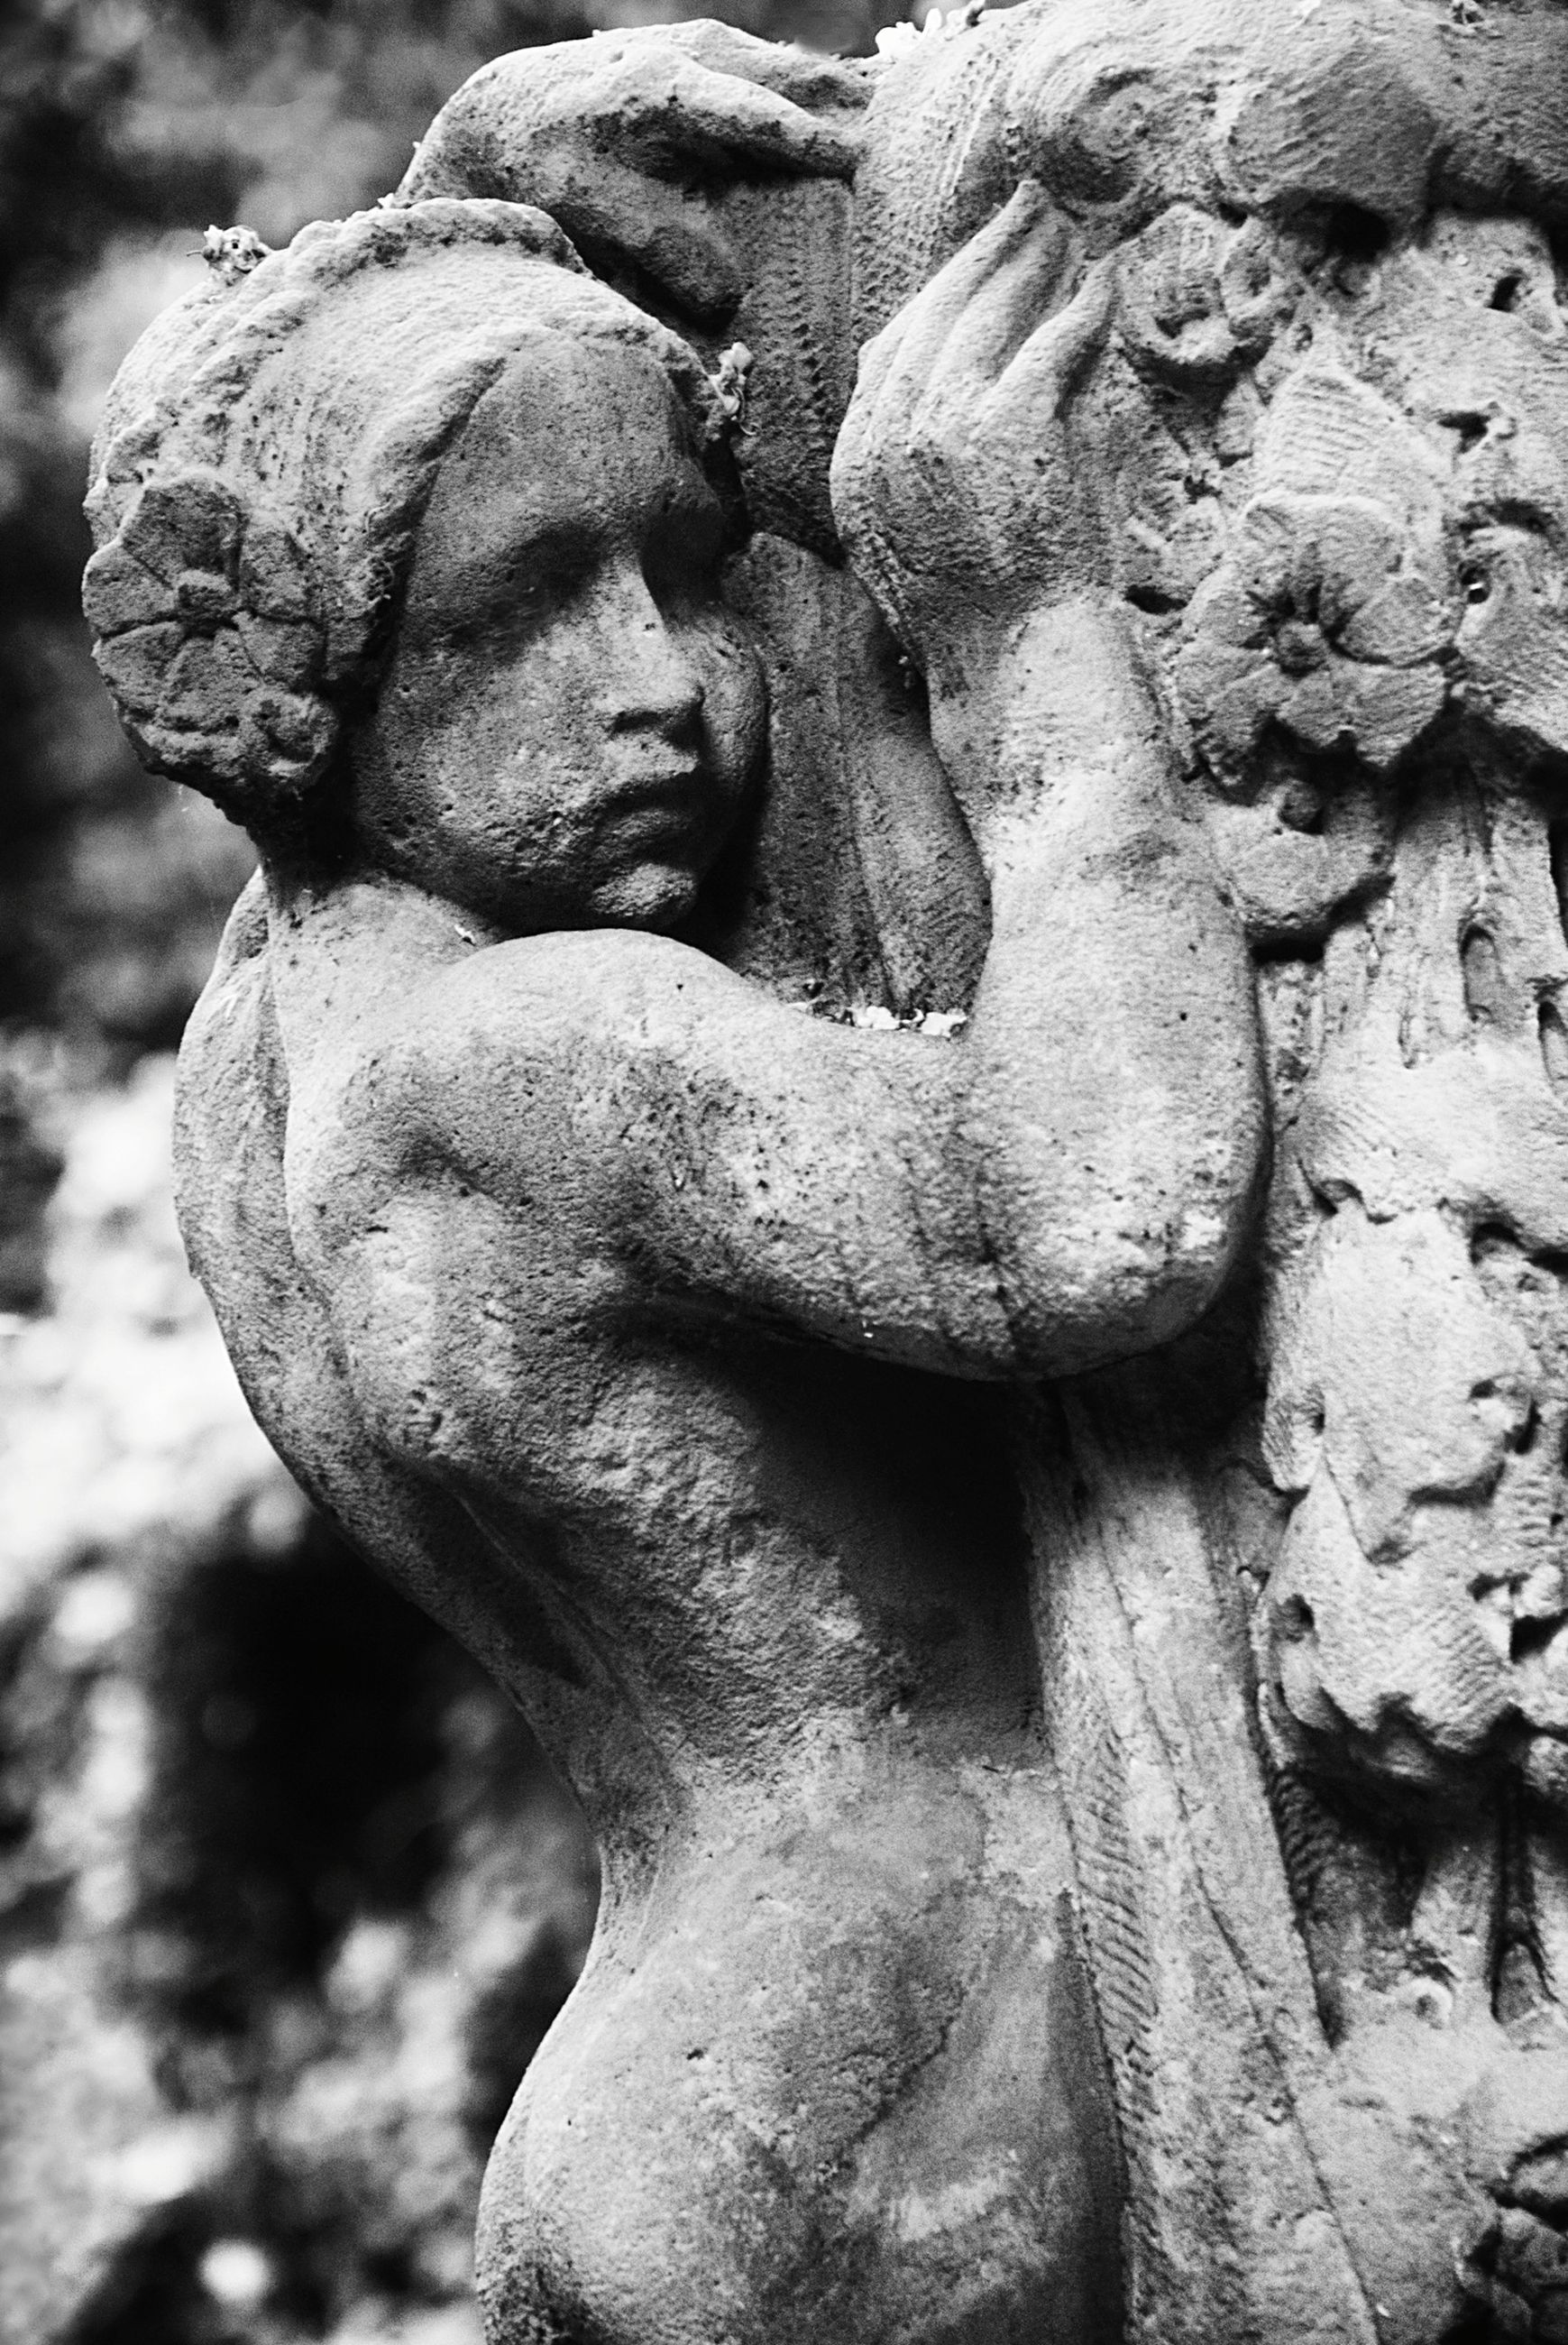 sculpture, statue, human representation, art, art and craft, creativity, close-up, focus on foreground, carving - craft product, outdoors, day, tree, stone, no people, nature, weathered, low angle view, animal representation, old